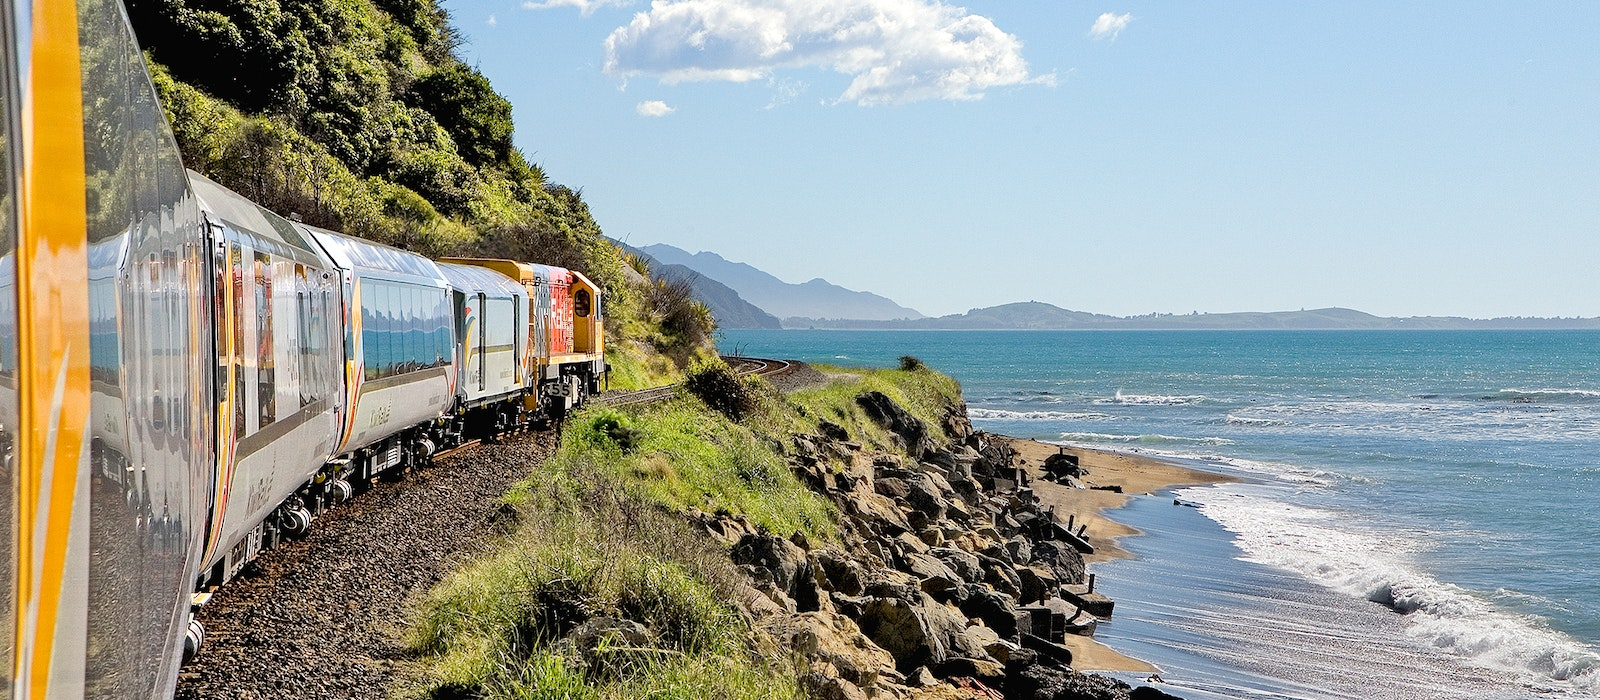 The soon-to-reopen Coastal Pacific Train heading north along the Pacific Coastline toward the coastal town of Kaikoura